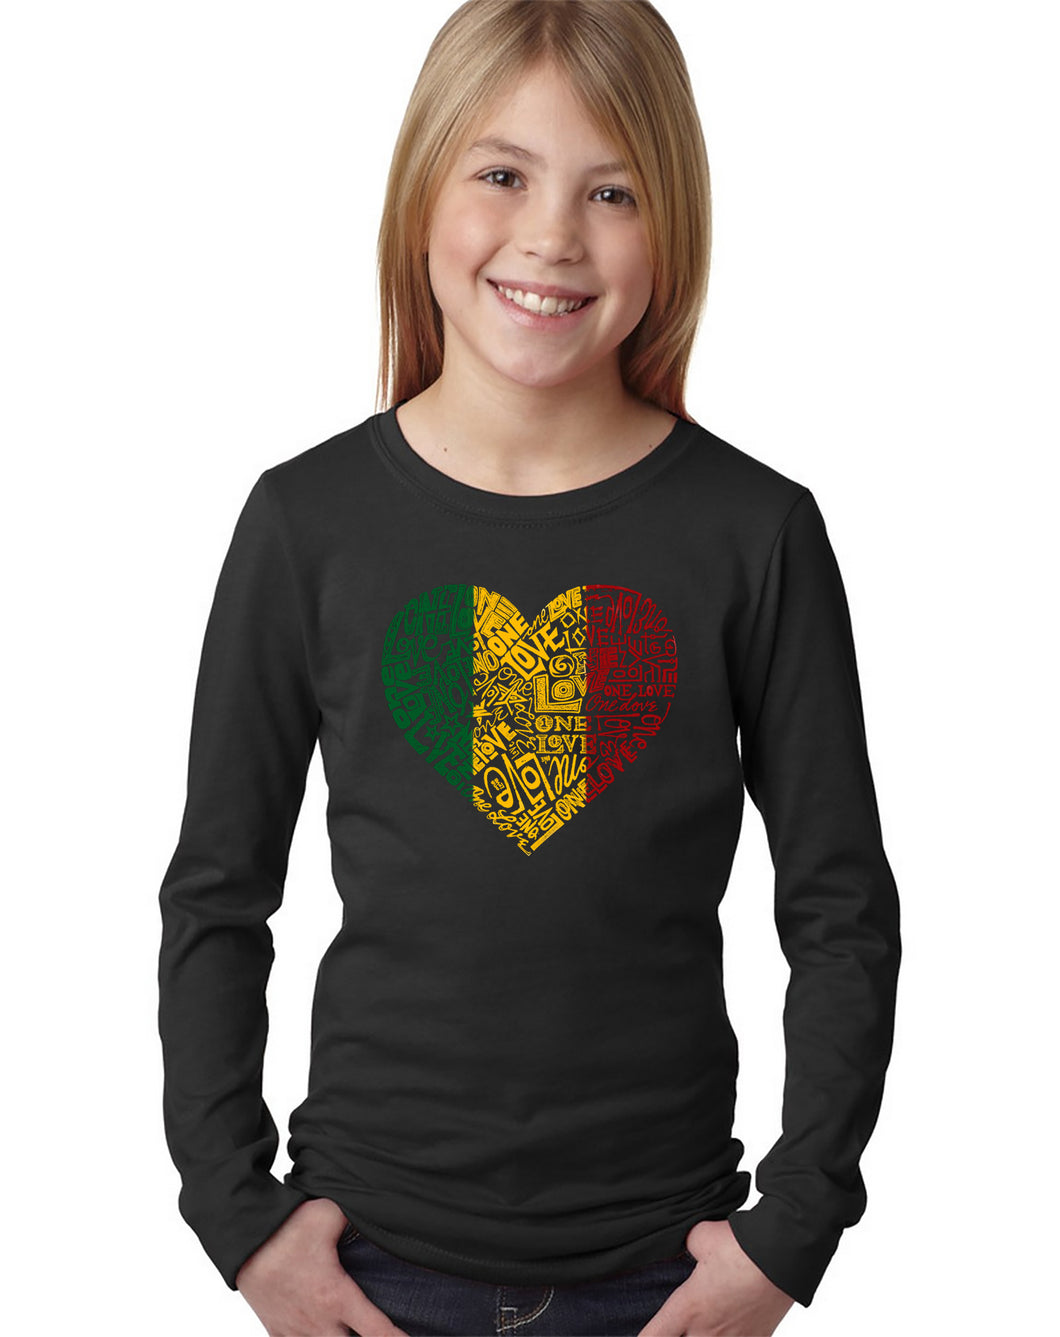 LA Pop Art Girl's Word Art Long Sleeve - One Love Heart